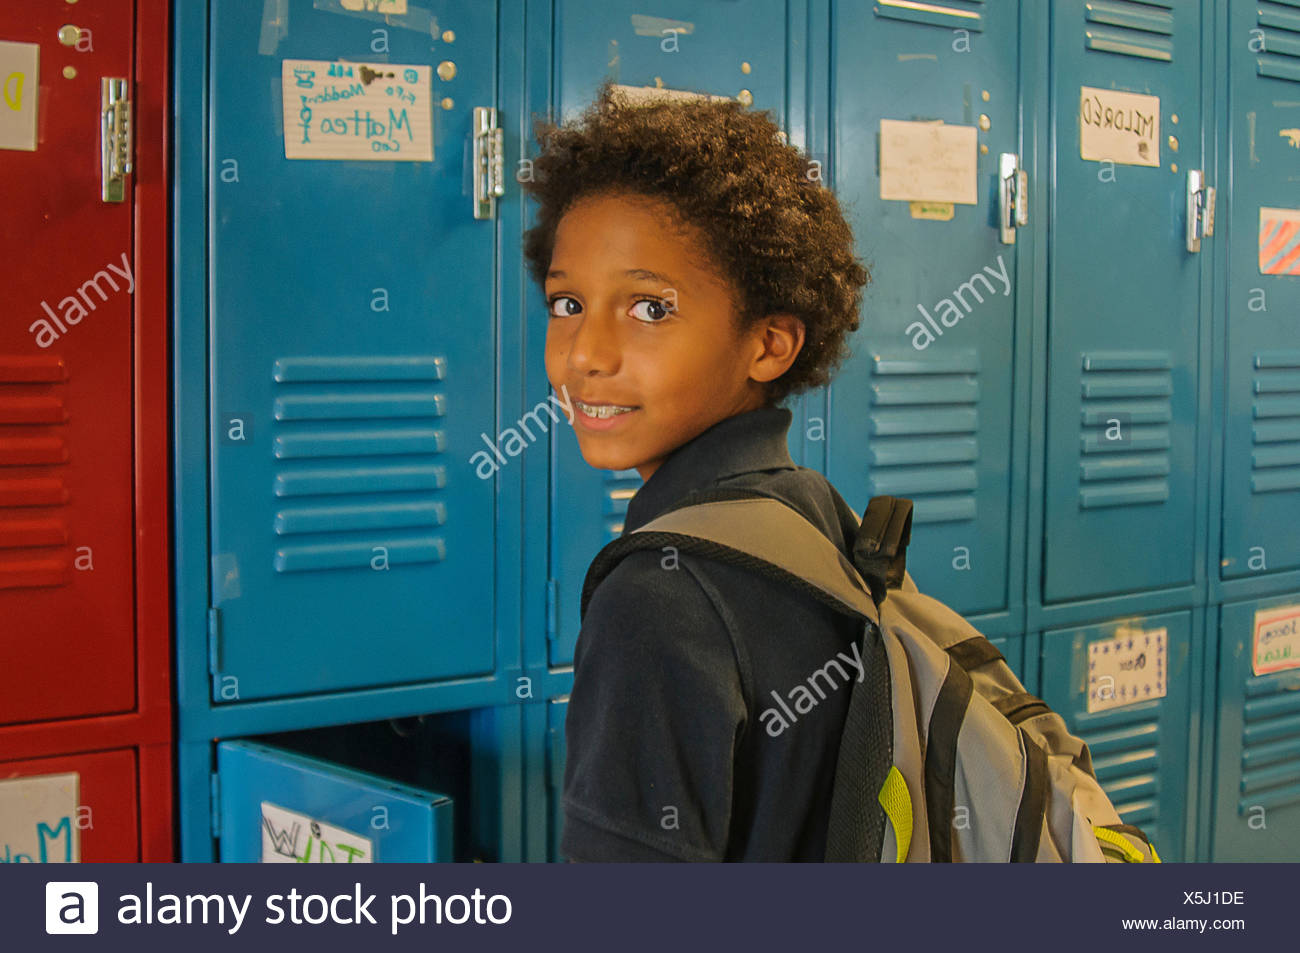 Portrait of schoolgirl opening school locker - Stock Image